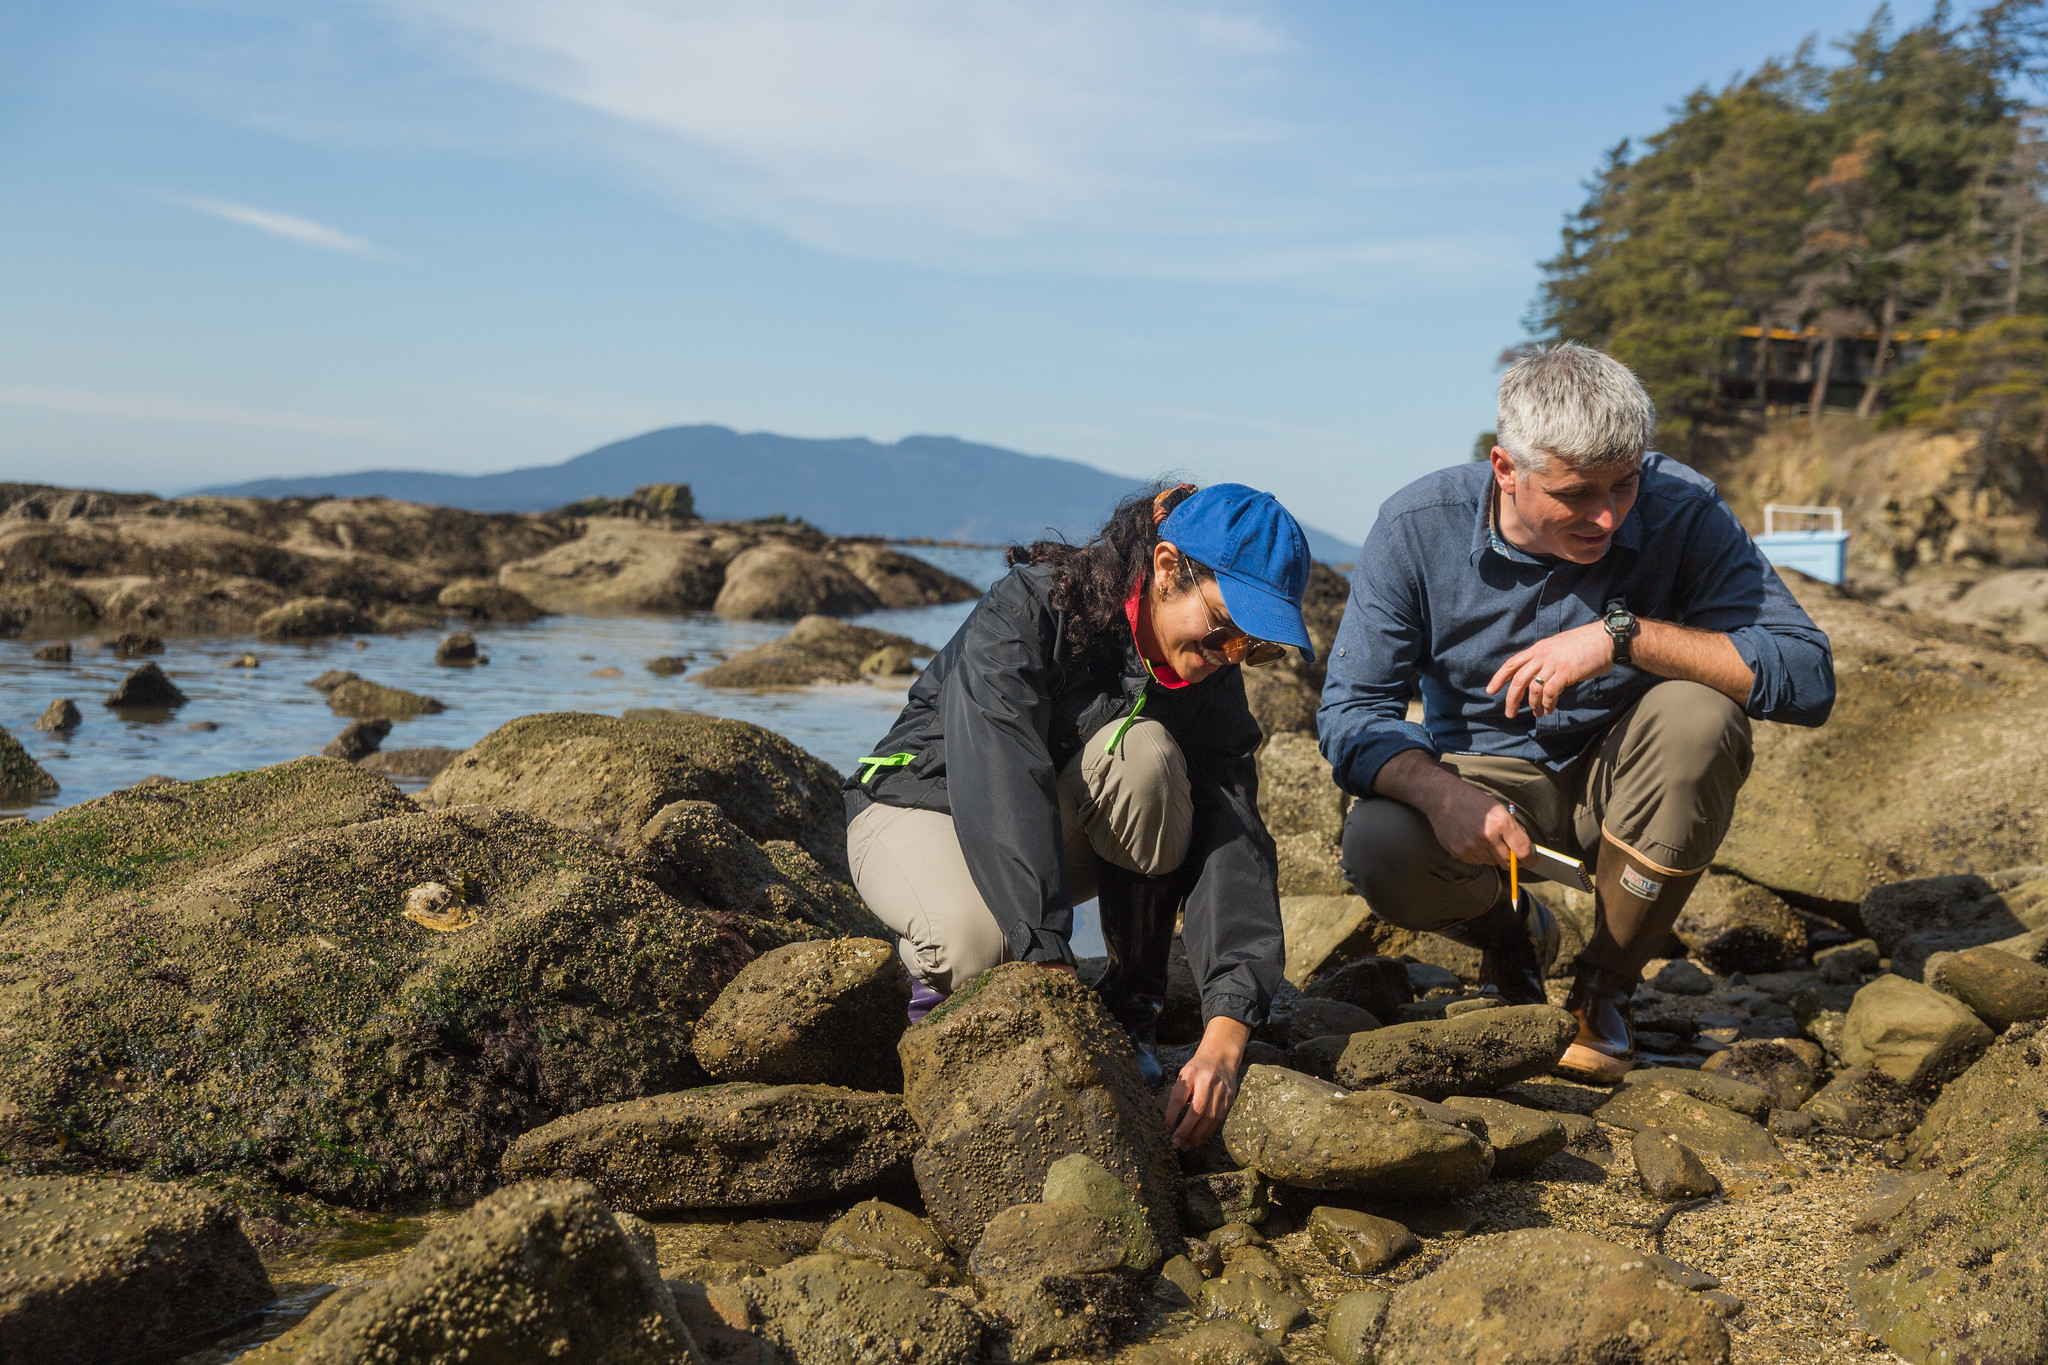 Dr. Marco Hatch, a Samish Indian Nation member, and Assistant Professor at Western Washington University working with an undergraduate research student in local tidal pools.